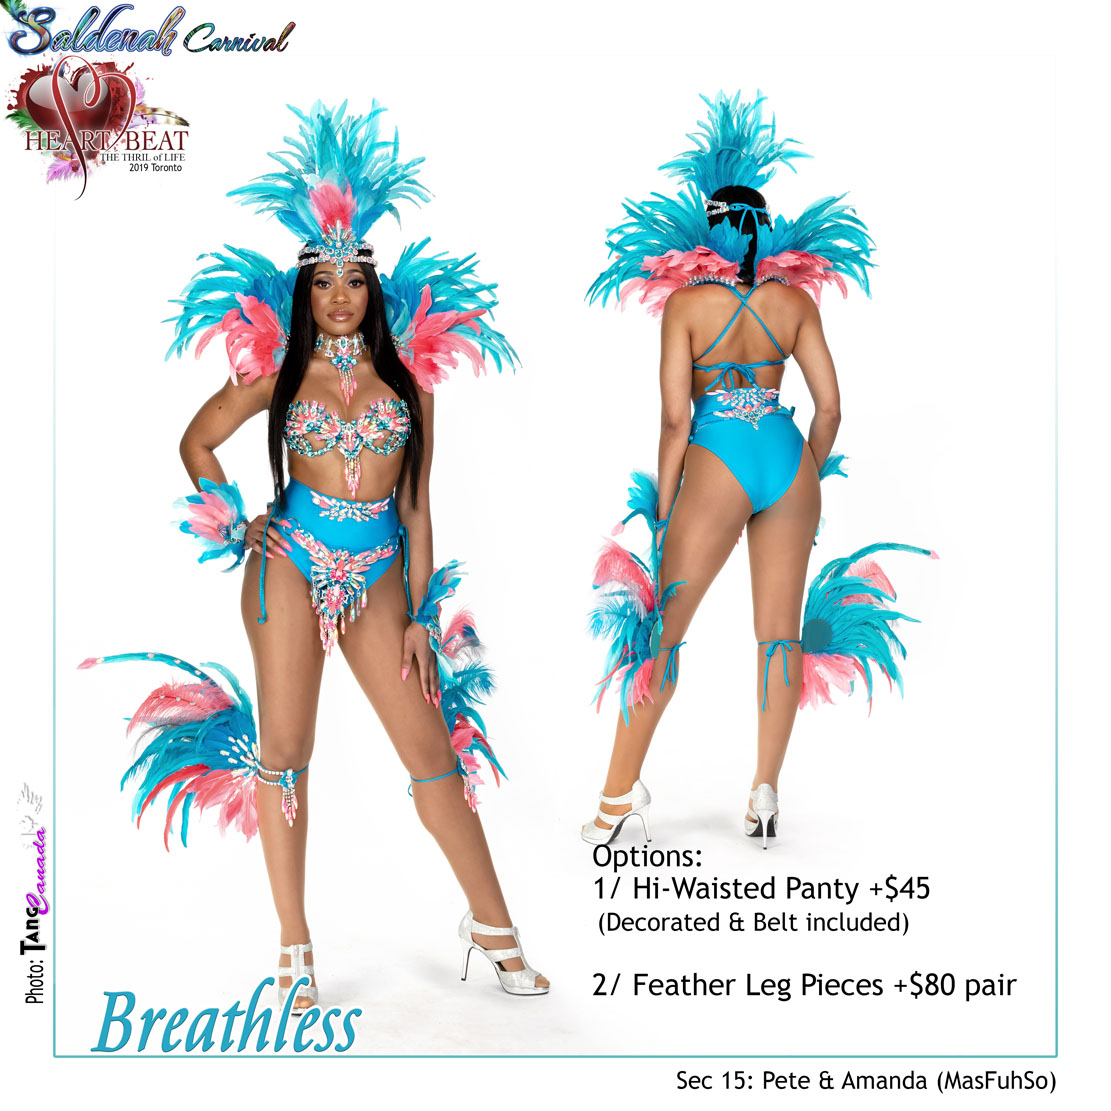 Saldenah Carnival Section 15 Breathless